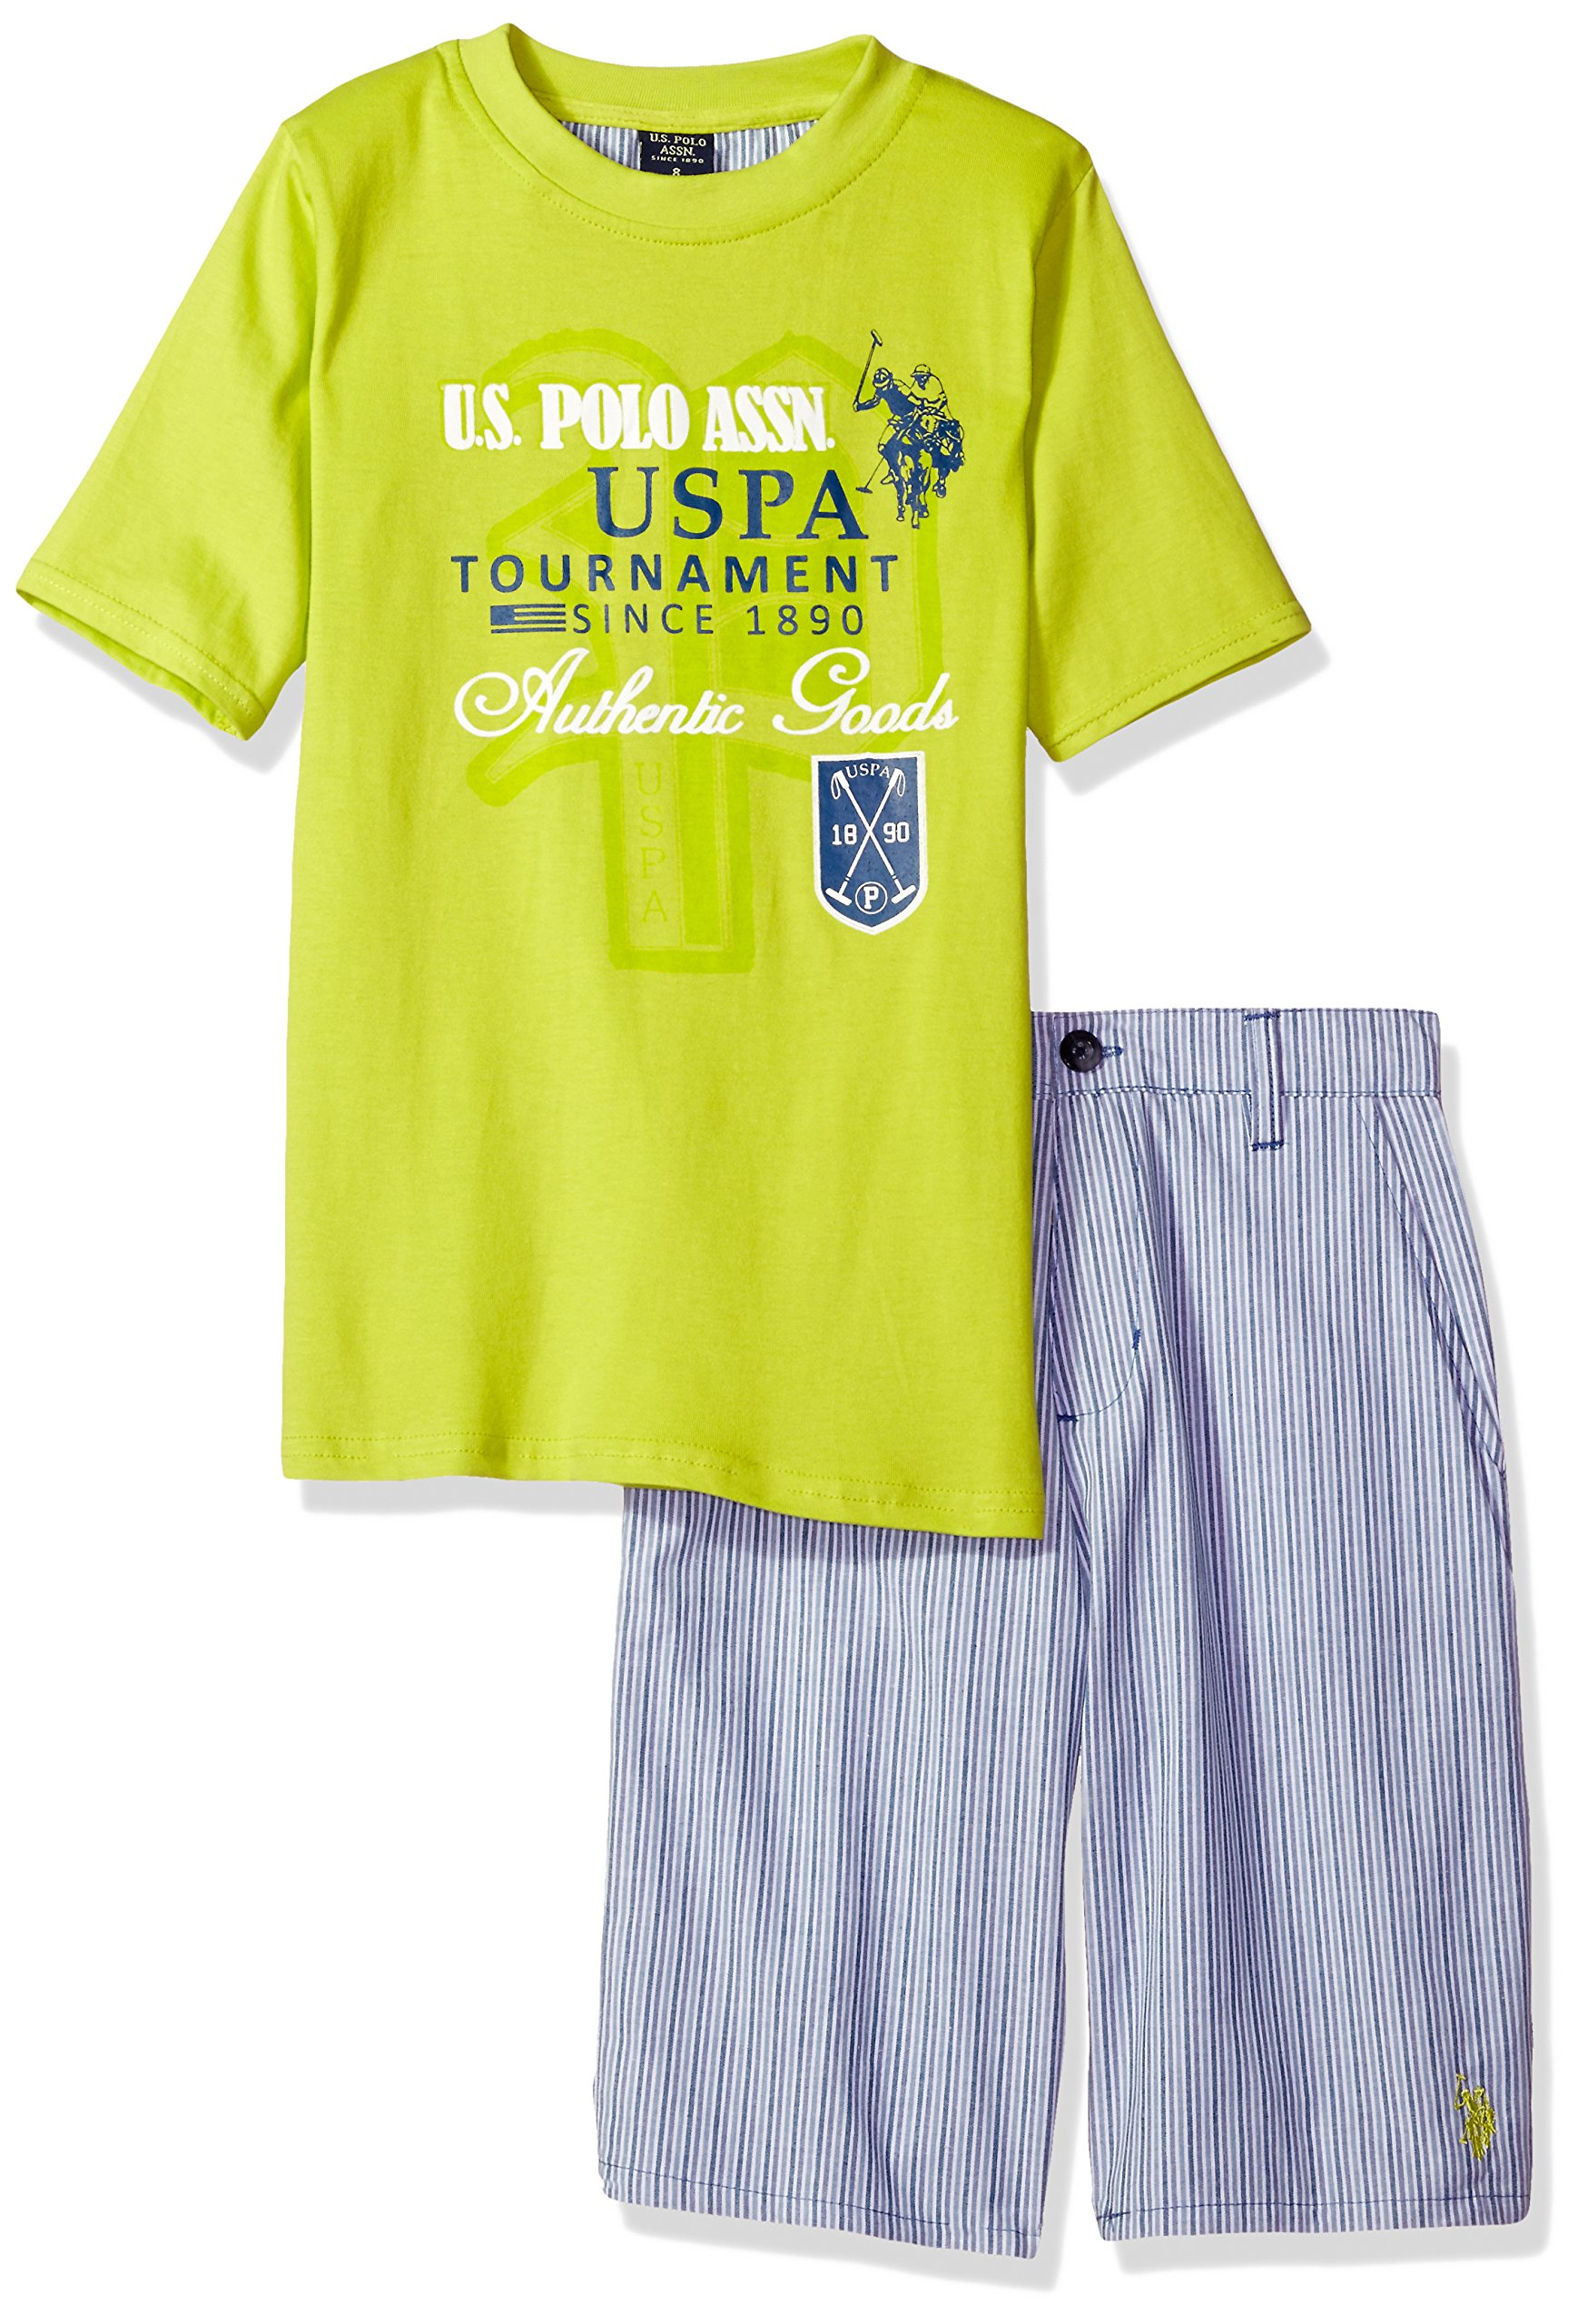 U.S. Polo Assn. Little Boys' Toddler Striped Cotton Short and 2-fer Look Graphic T-Shirt, Plaid, 3T